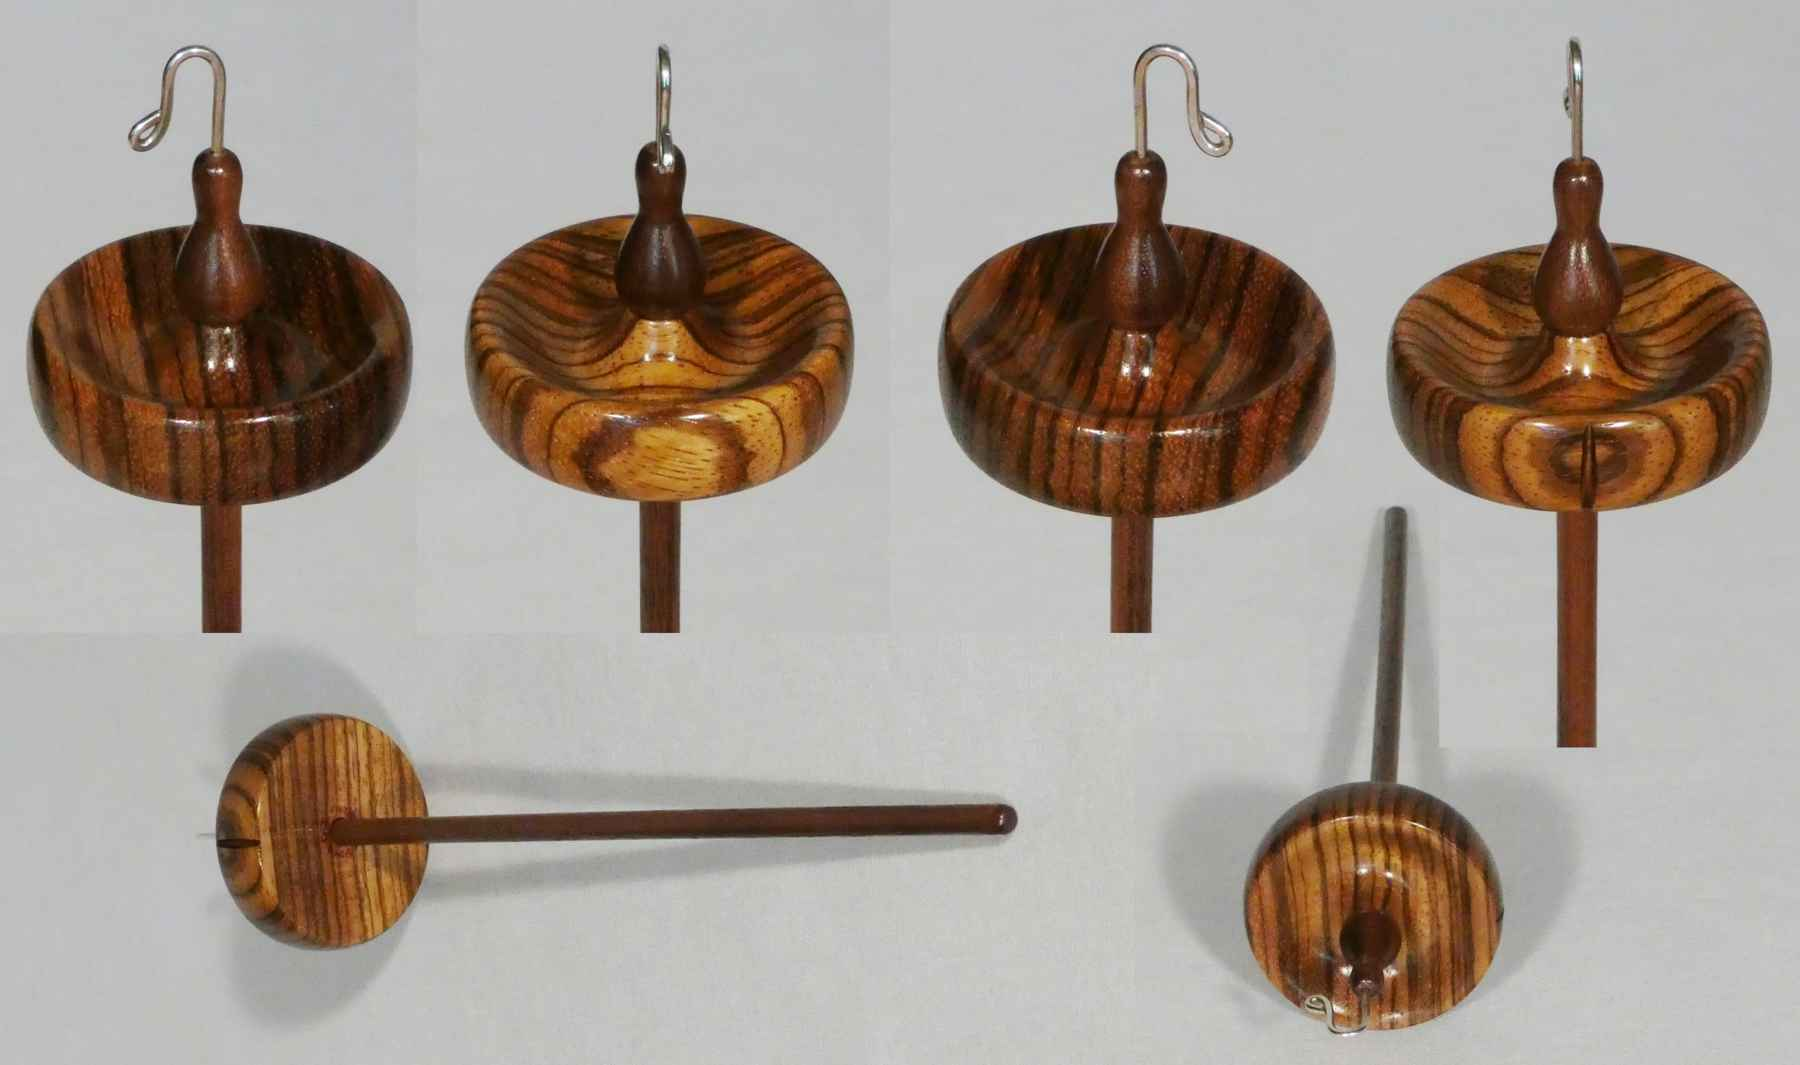 Luxury top whorl drop spindle handturned by Cynthia D. Haney from Zebrawood and Walnut with a Sterling Silver hook.